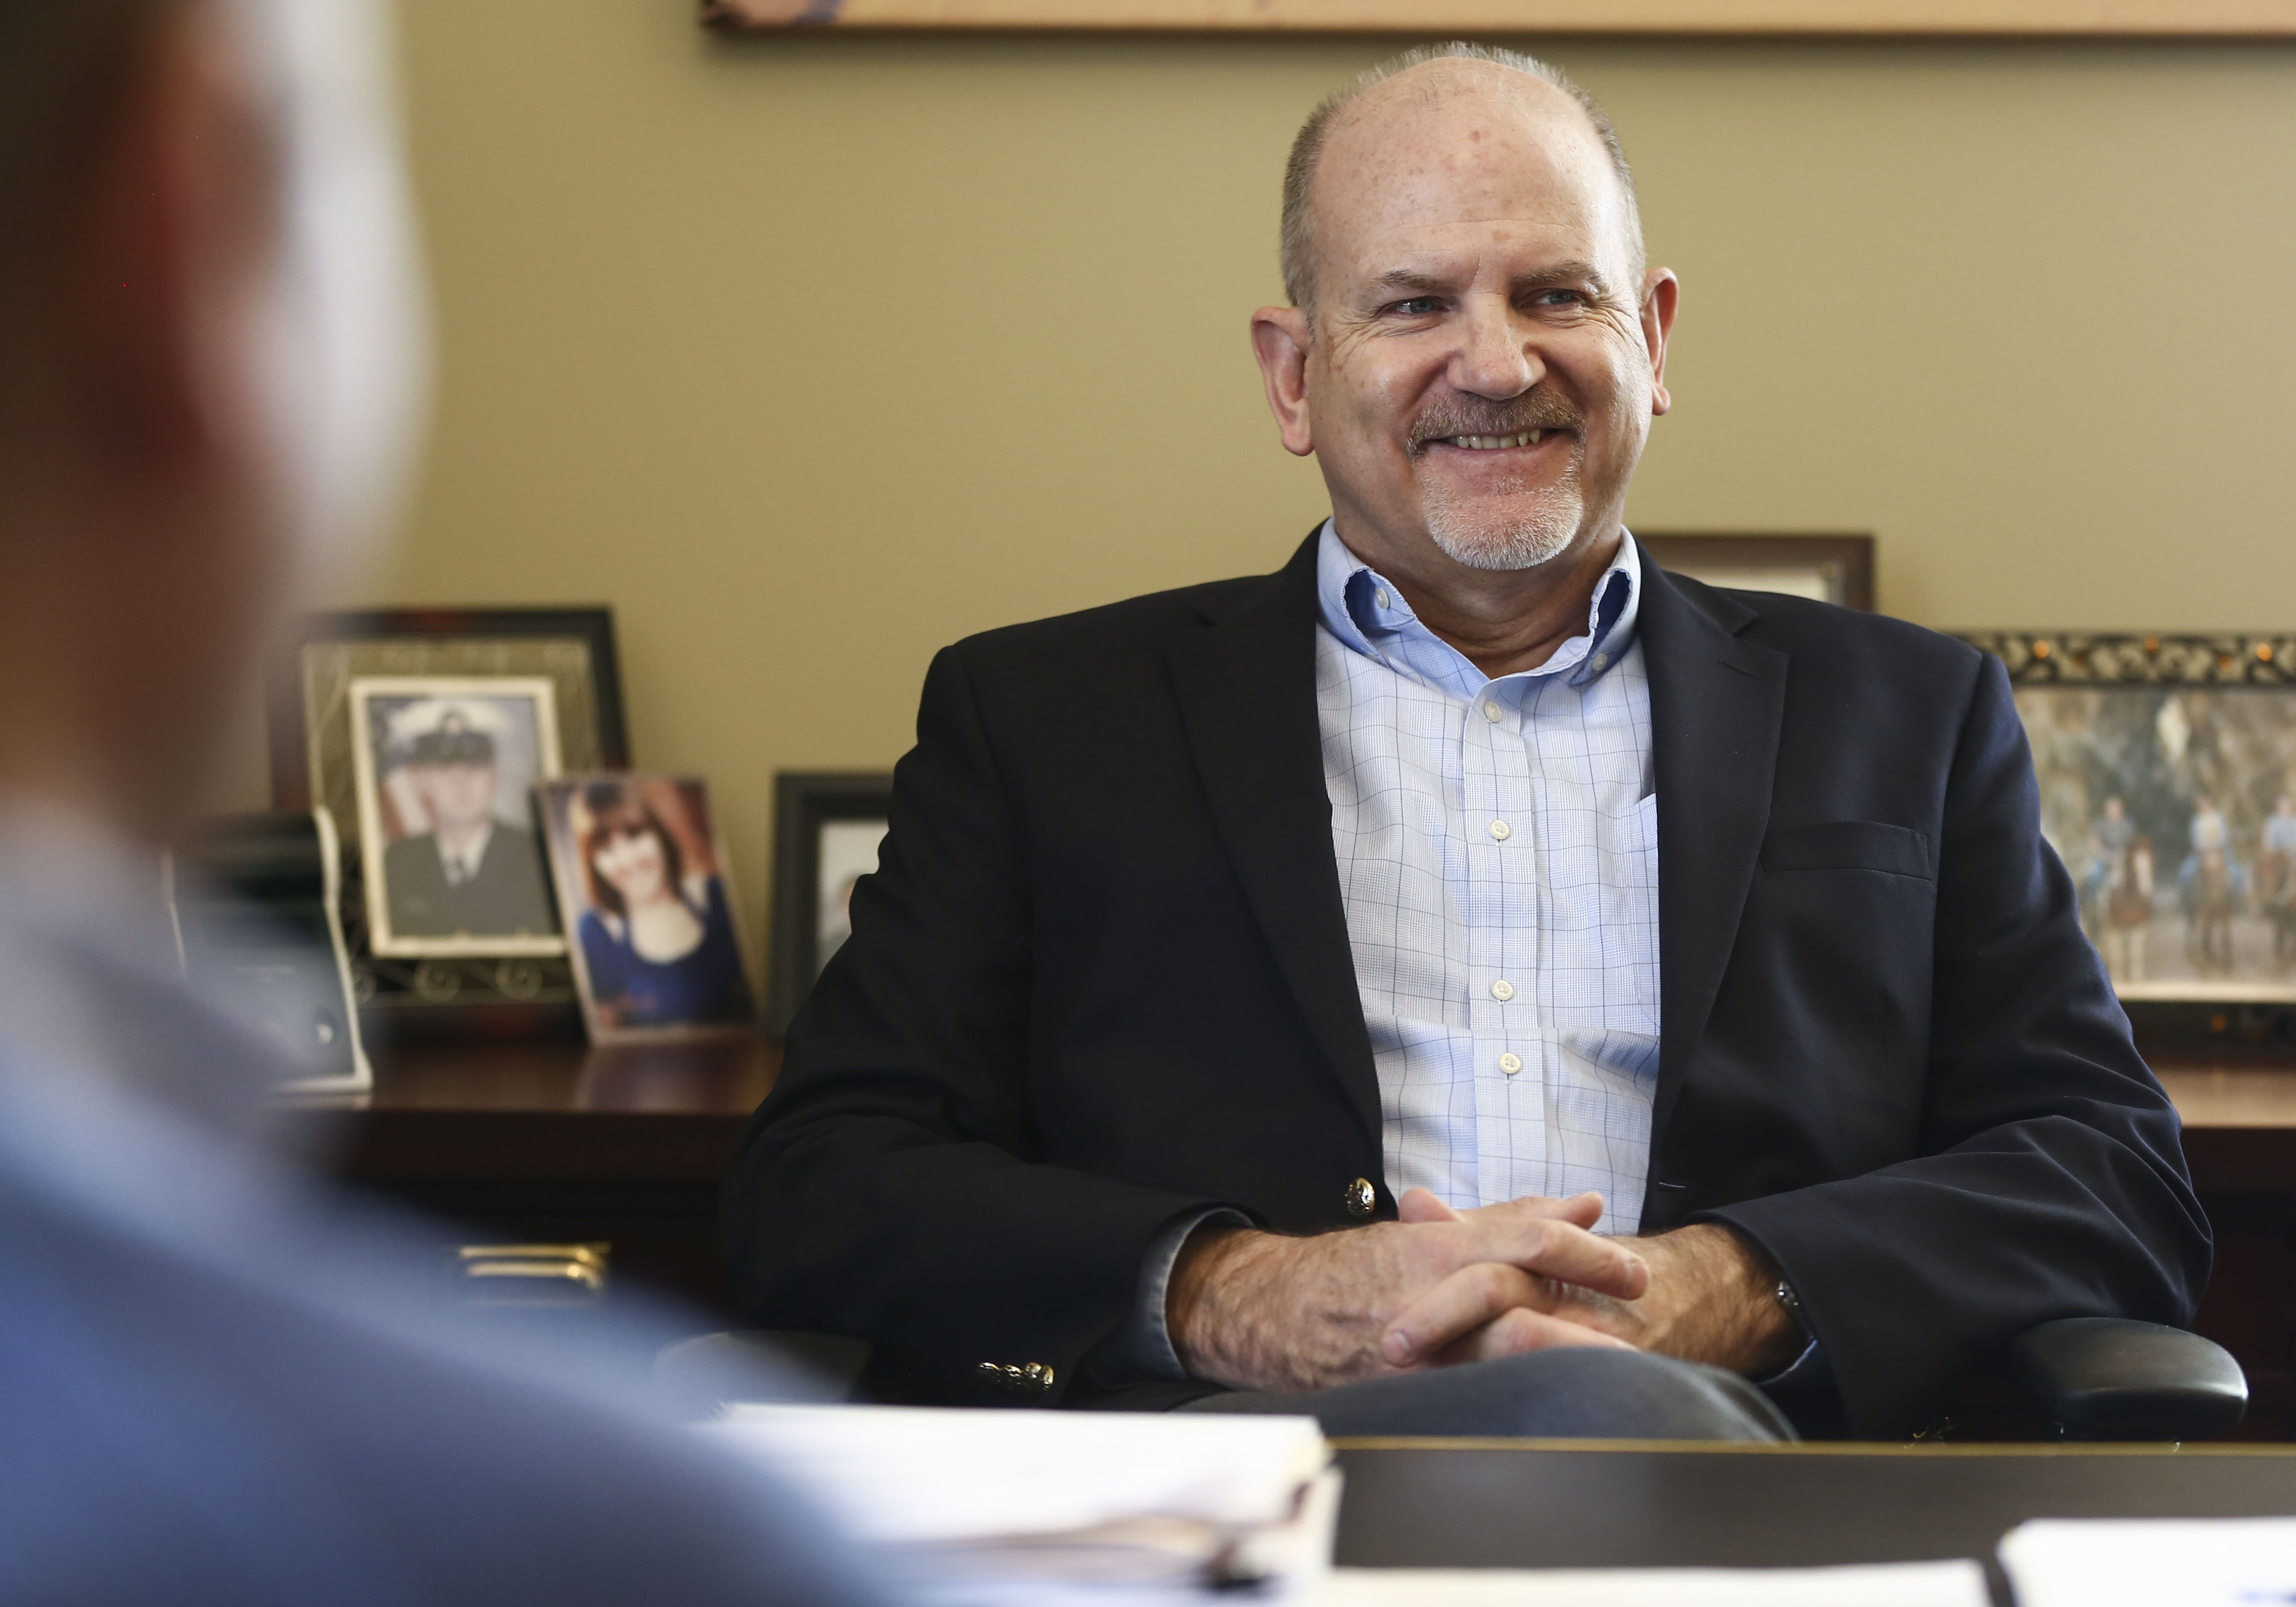 Utah State Treasurer David Damschen works in his office at the Capitol in Salt Lake City on Jan. 25, 2019. Damschen is tasked to find ways for medical marijuana businesses and state agencies to get or maintain banking services.